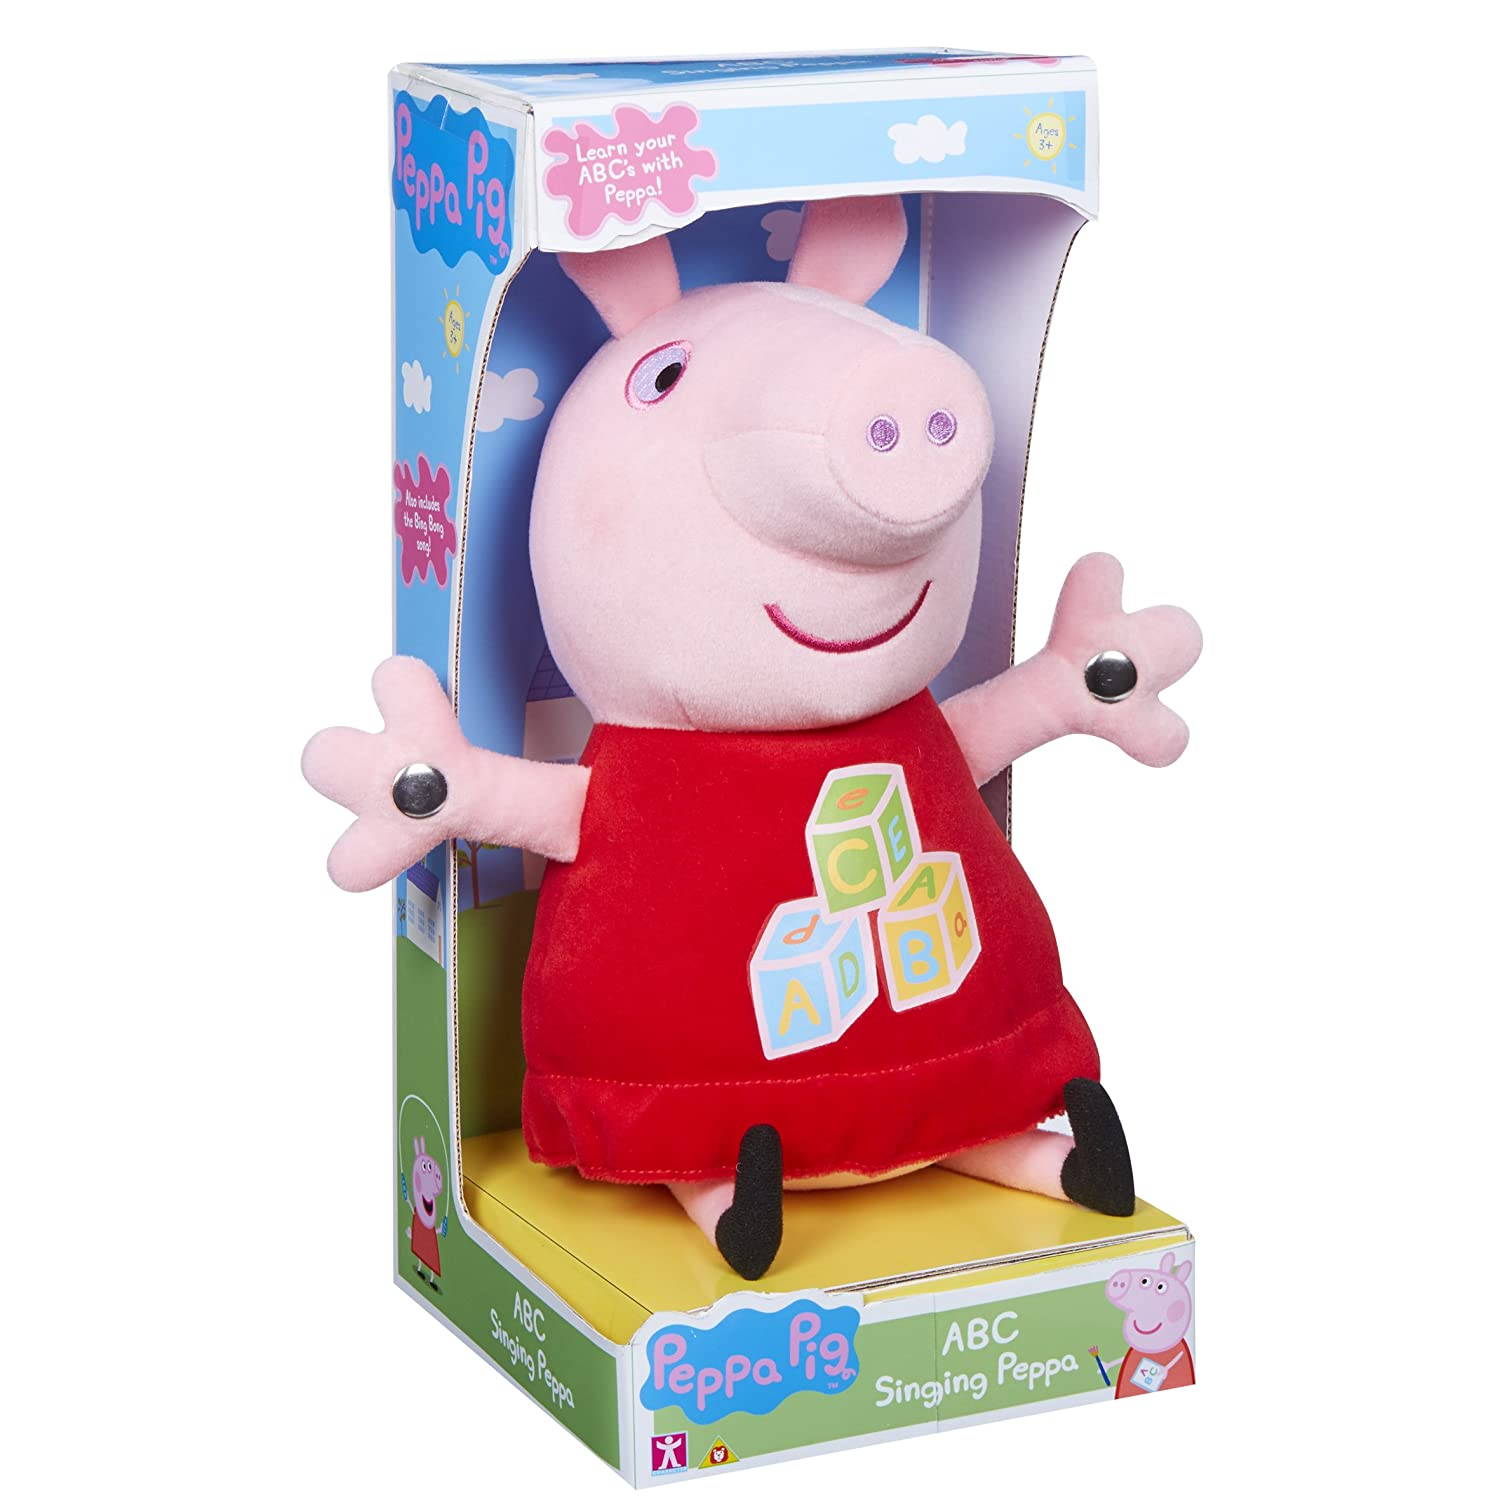 Peppa Pig 06386 ABC Singing Plush Toy Character Options